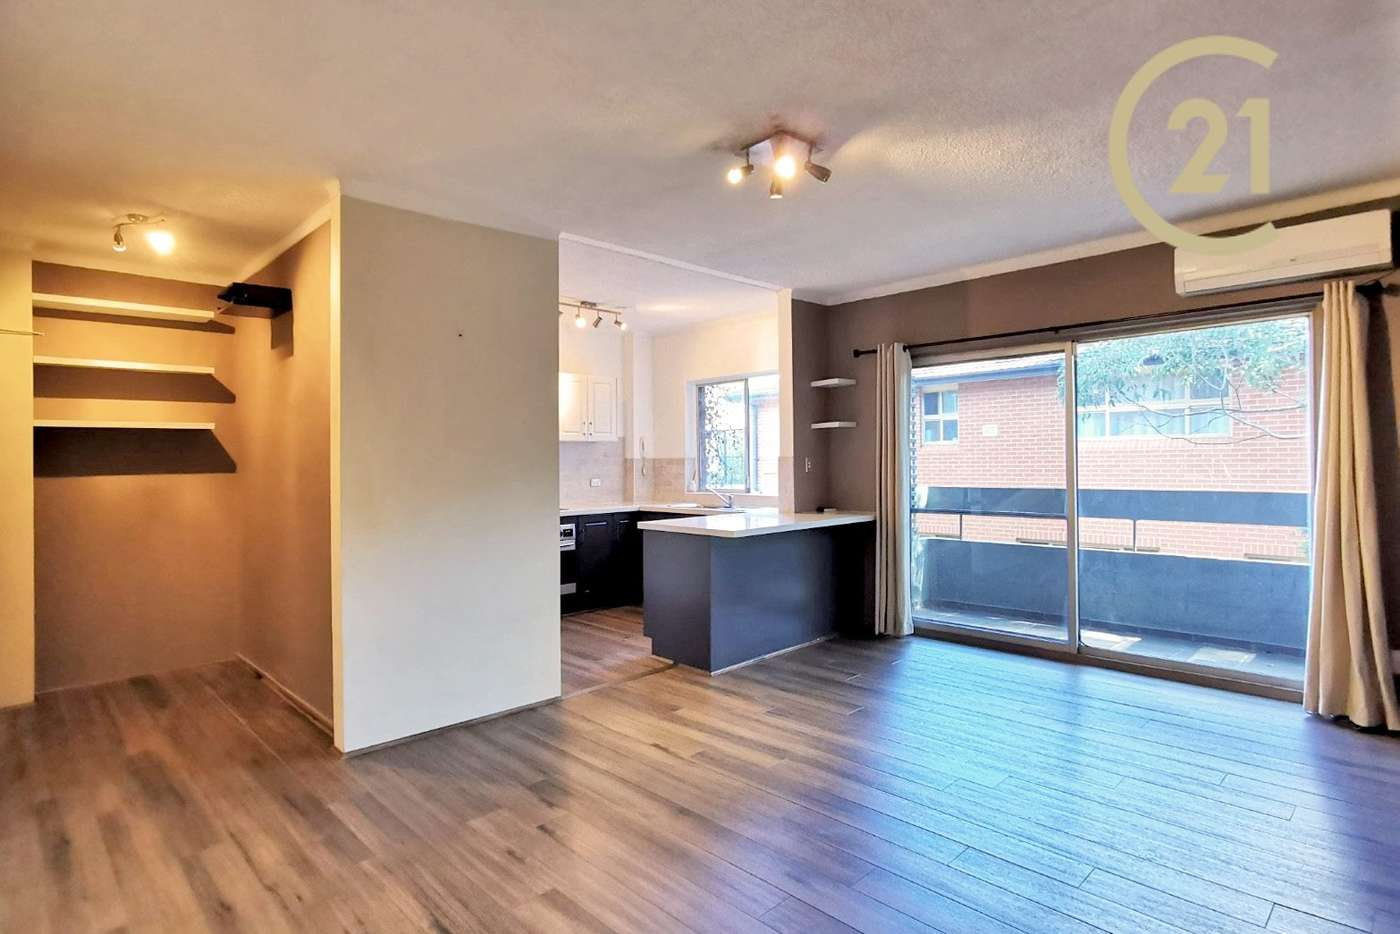 Main view of Homely apartment listing, 23/1-3 Helen St, Lane Cove North NSW 2066